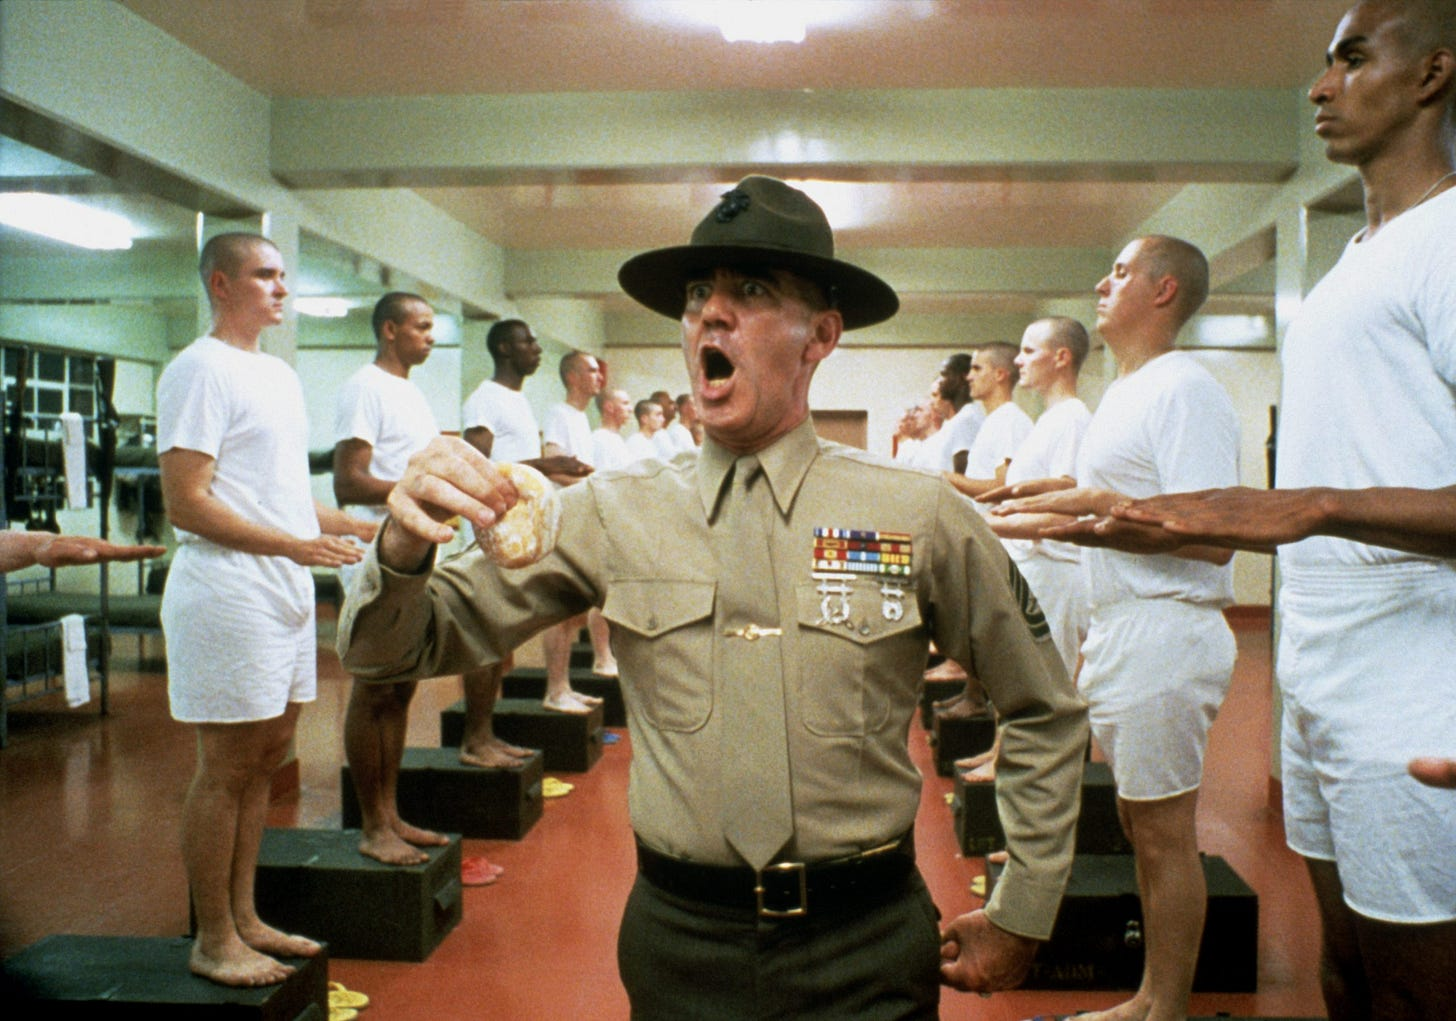 FULL METAL JACKET: CYNIC'S CHOICE - Scraps from the loft